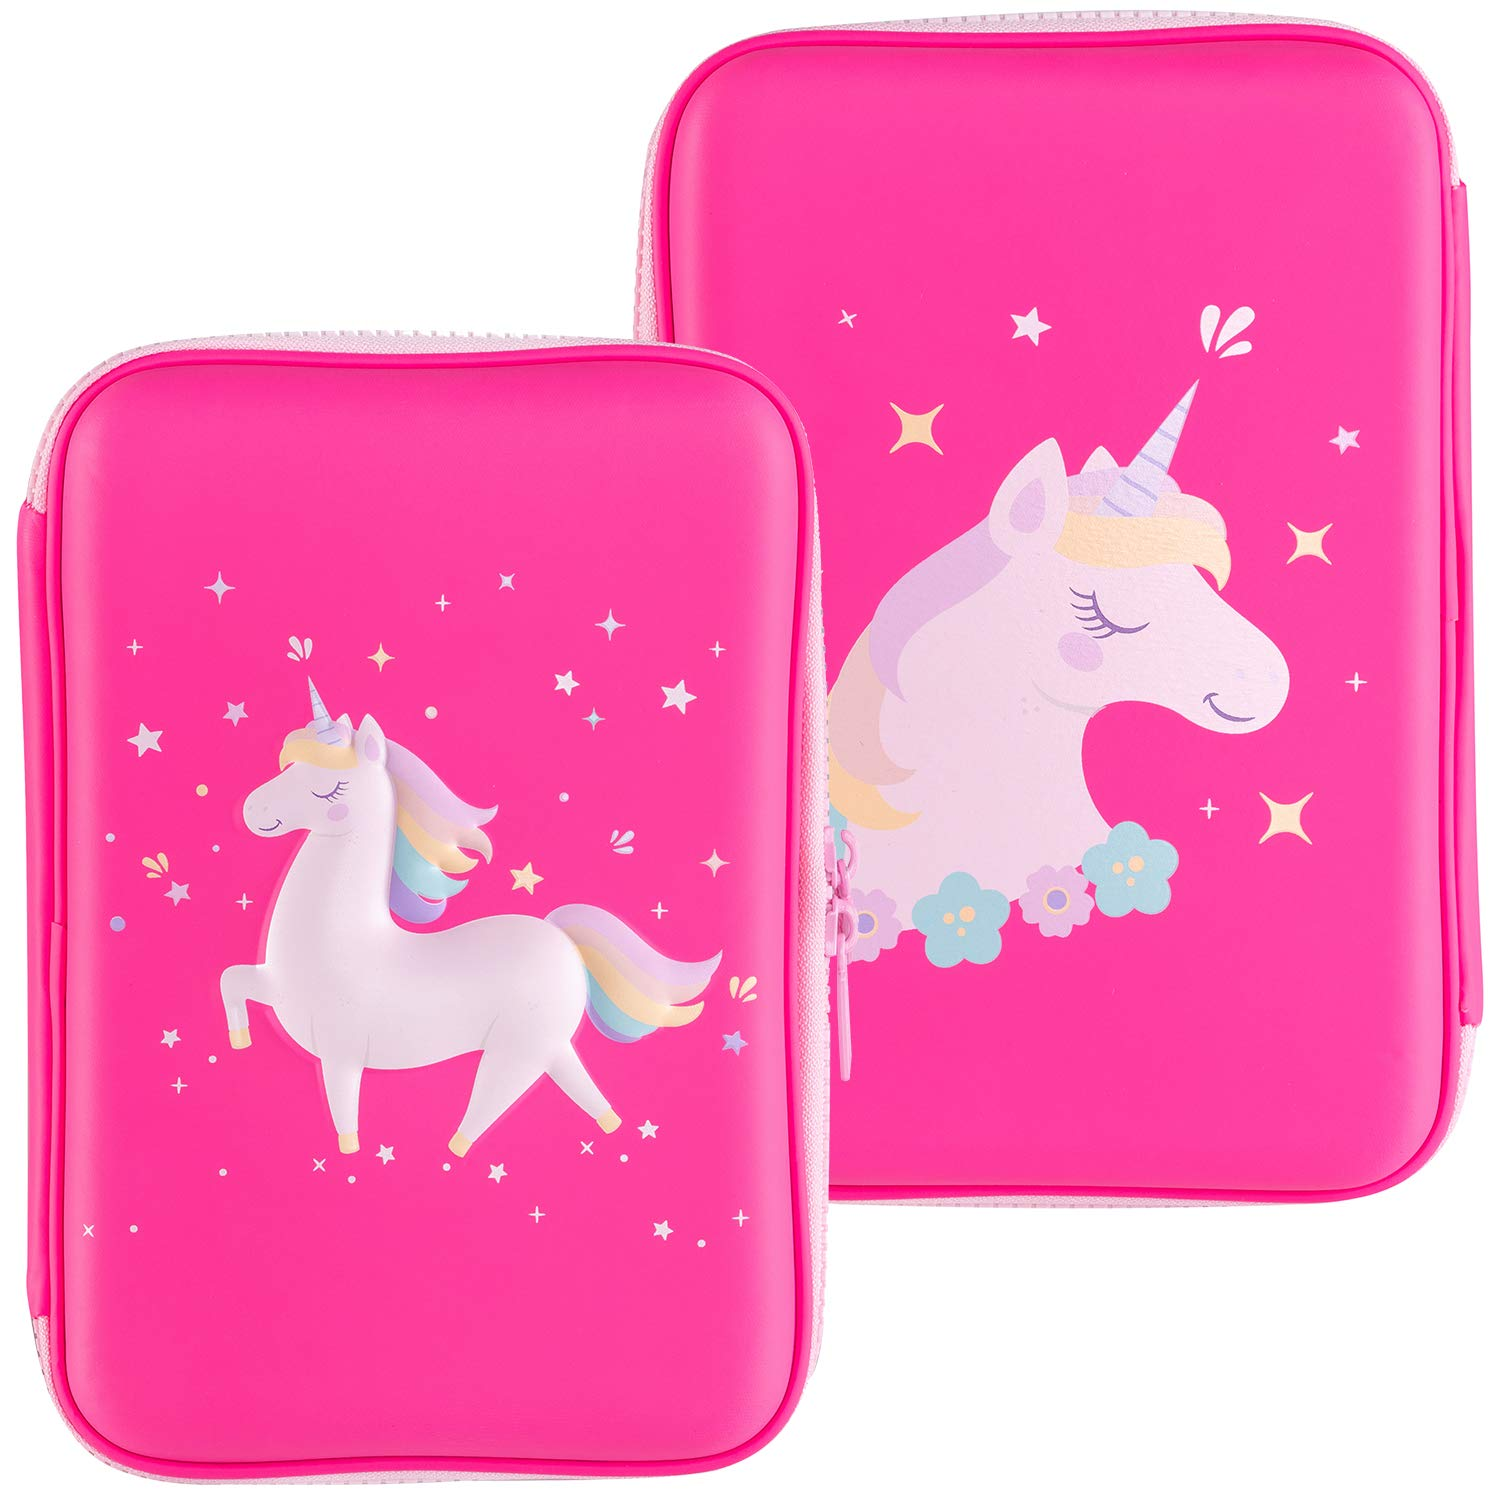 Gooji Unicorn Pencil Case for Girls (Hard Top) Magical 3D Creature, Bright Colored Storage Box | Compact and Portable Home, Classroom, Art Use | for Markers, Pens, Colored Pencils (Pink)